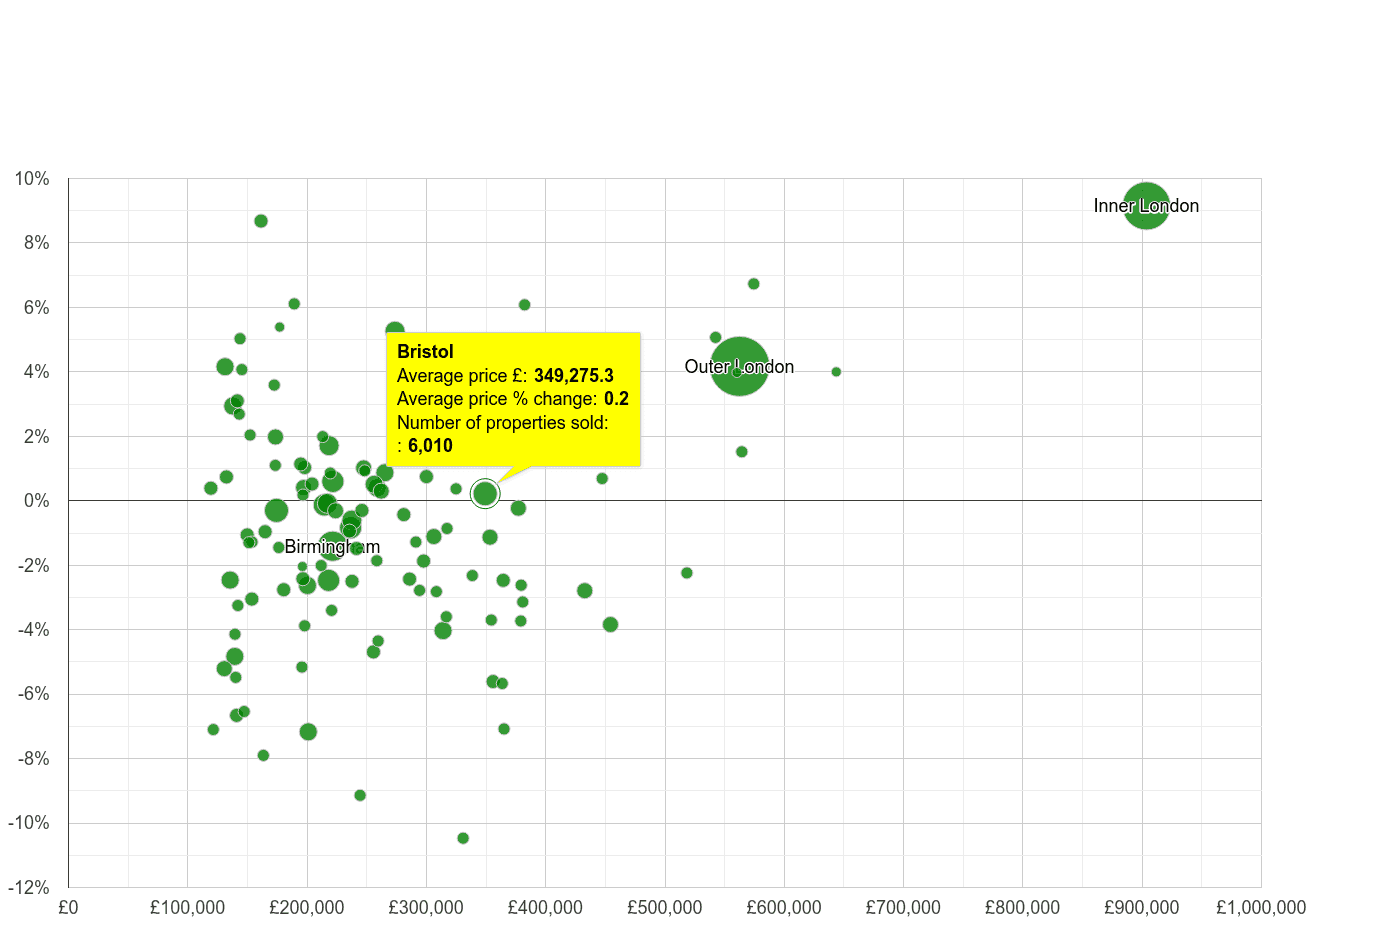 Bristol house prices compared to other cities